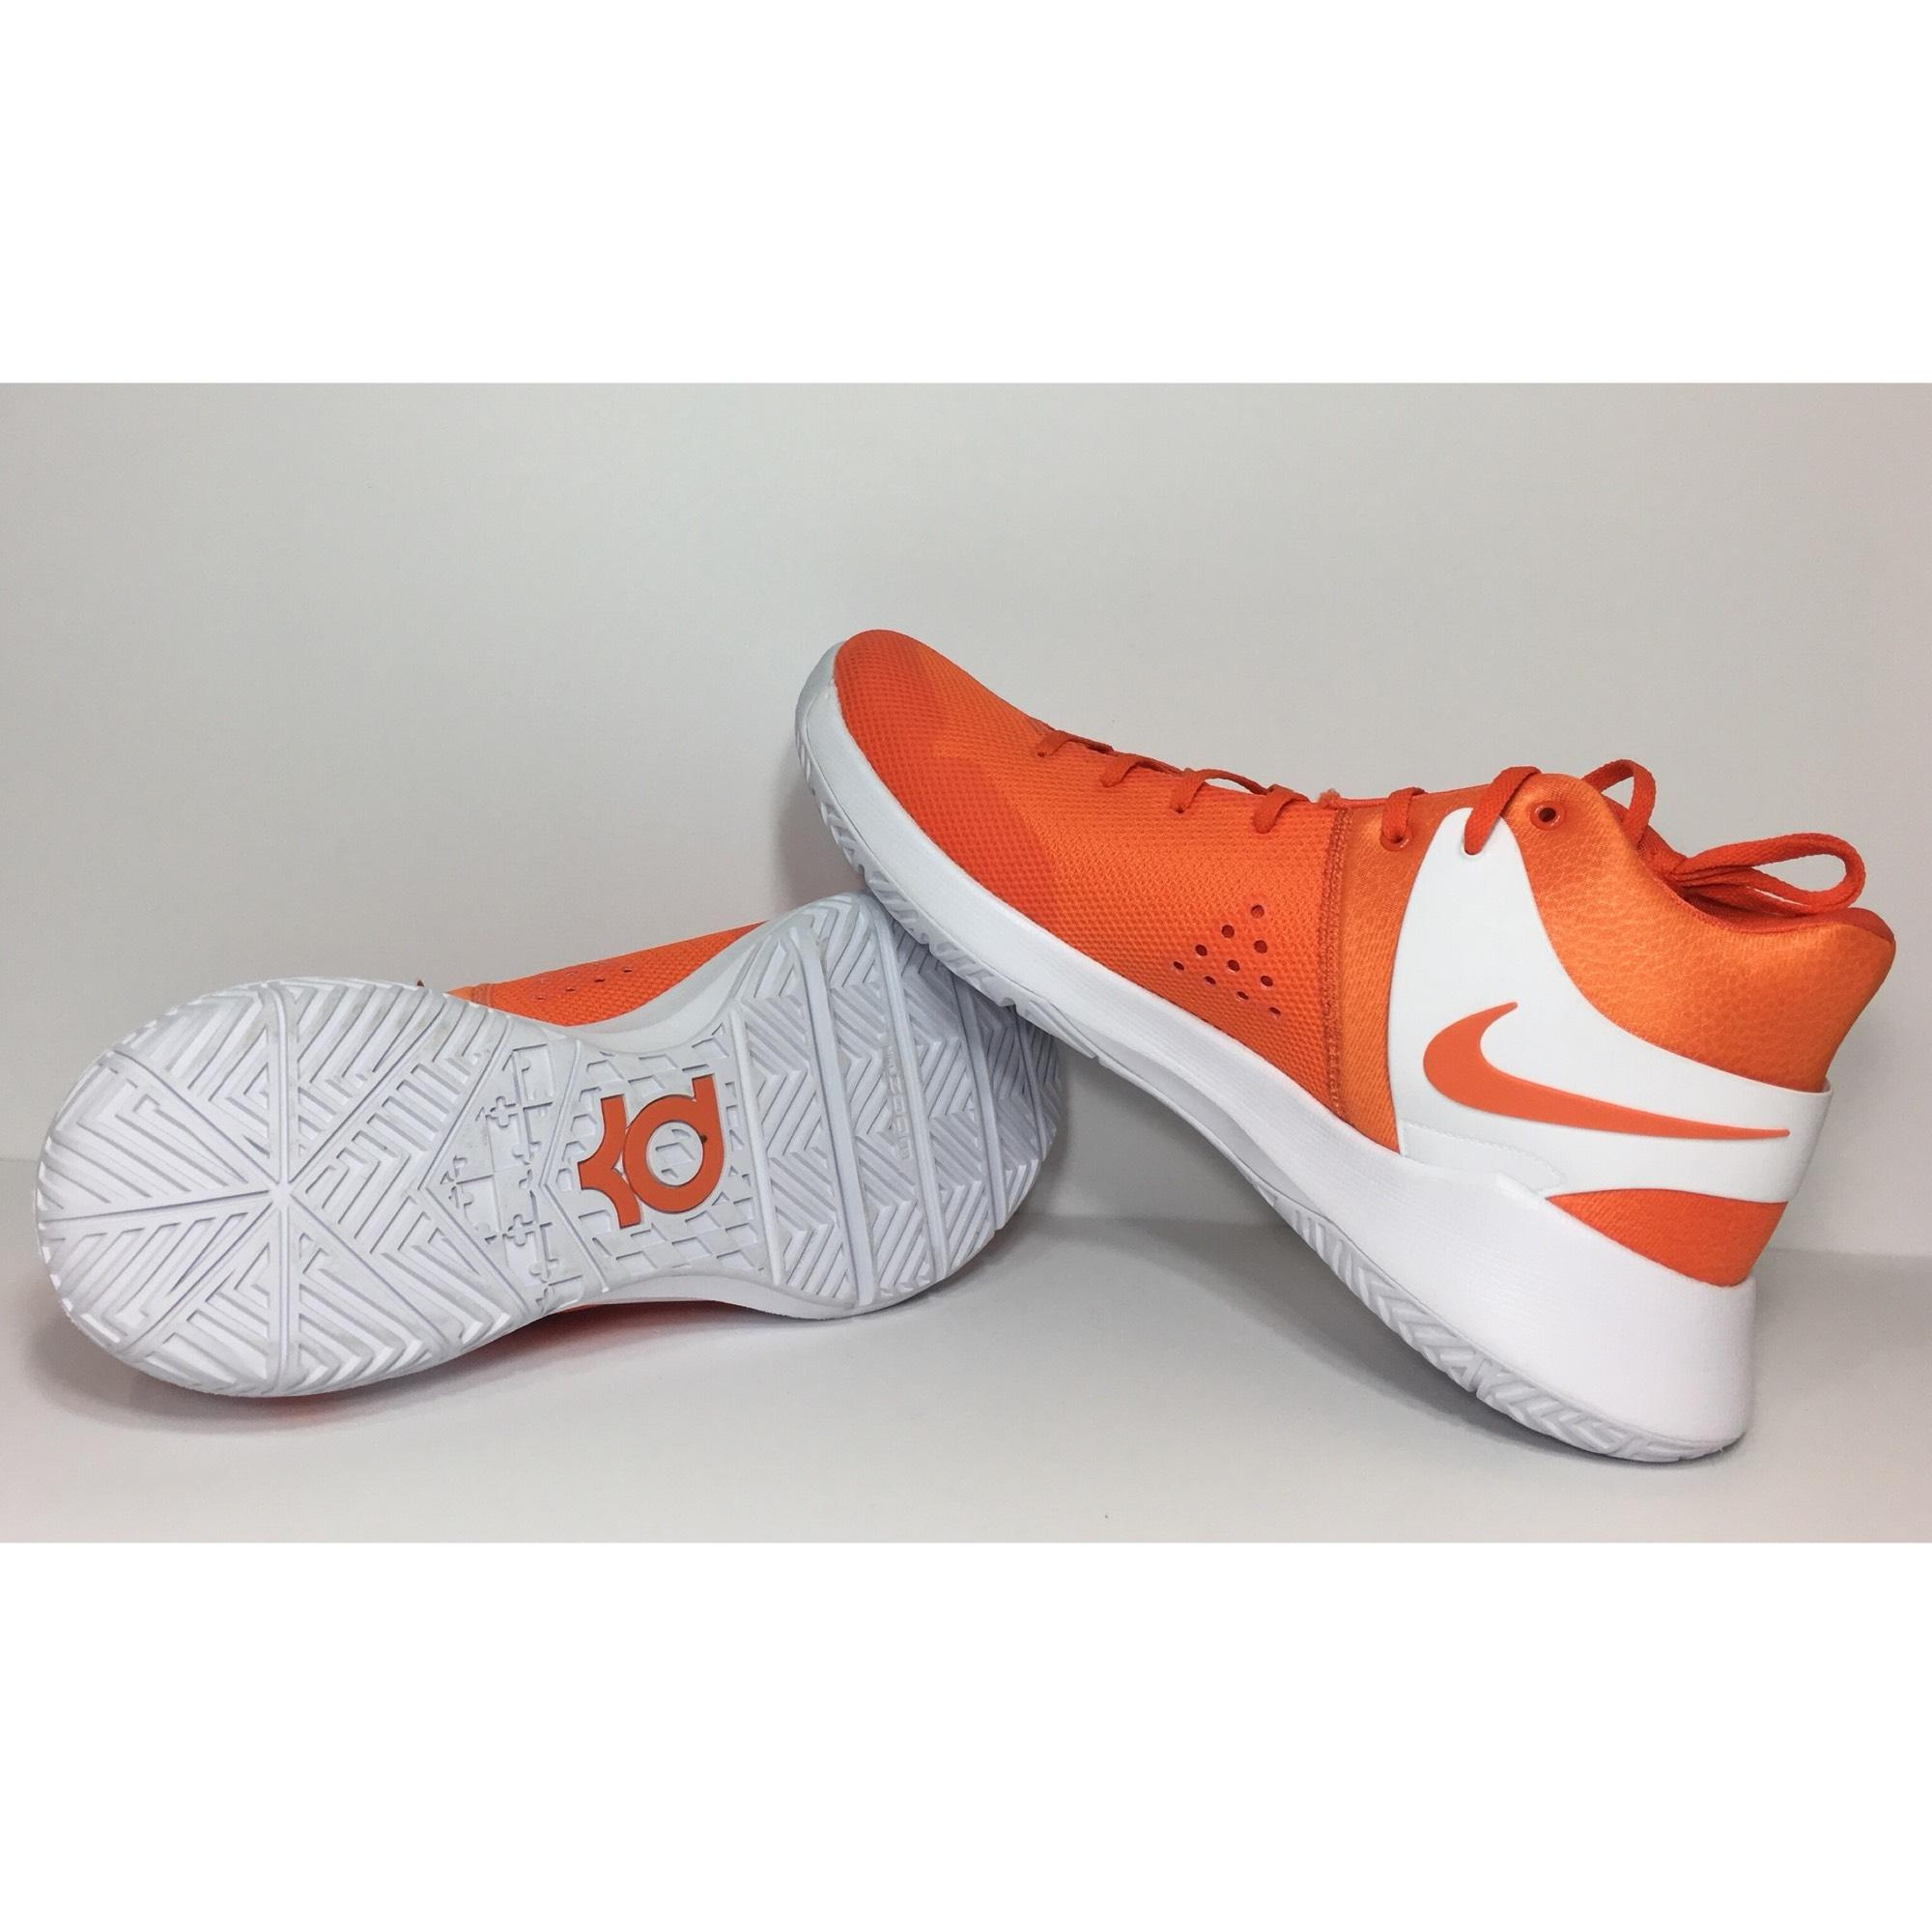 99e33c24ca52 ... shoes trainers size uk 9.5 b21e2 89776  inexpensive nike orange white  mens 15.5 kd trey 5 kevin durant basketball e4fda 792d4